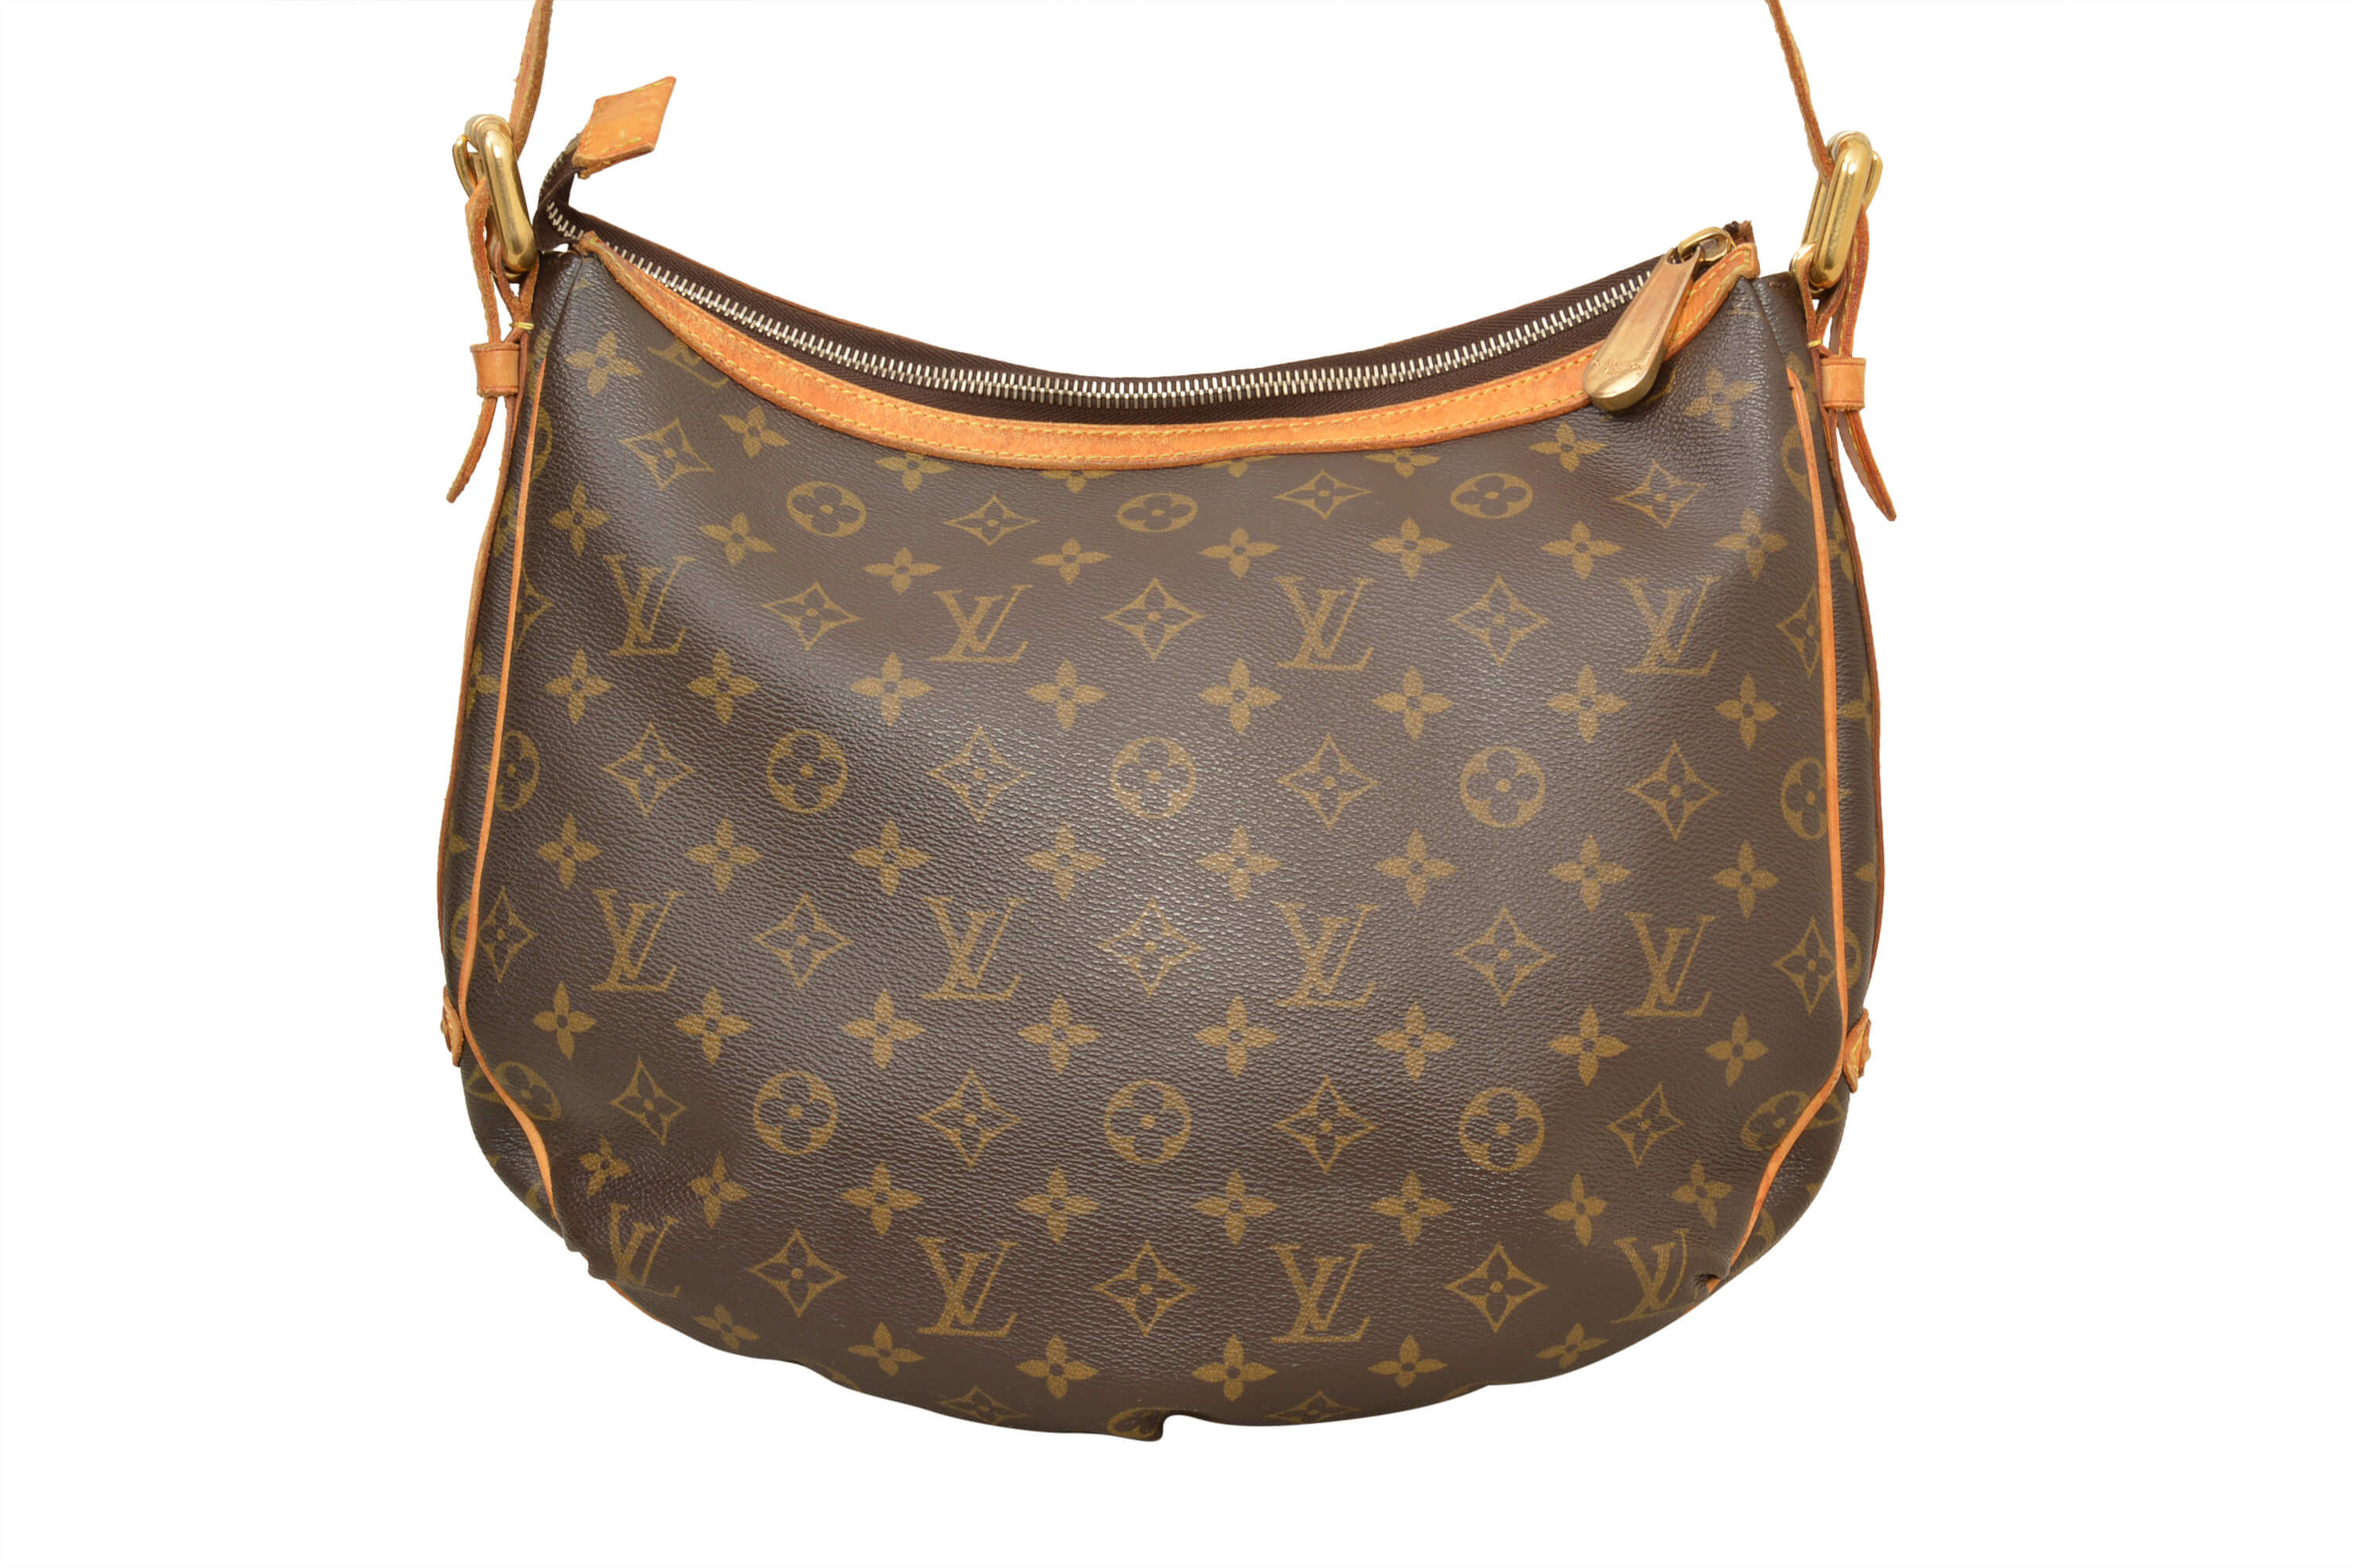 0101e61d2f3e Item Information. Brand name  Louis Vuitton  Product name  Tulum GM ...